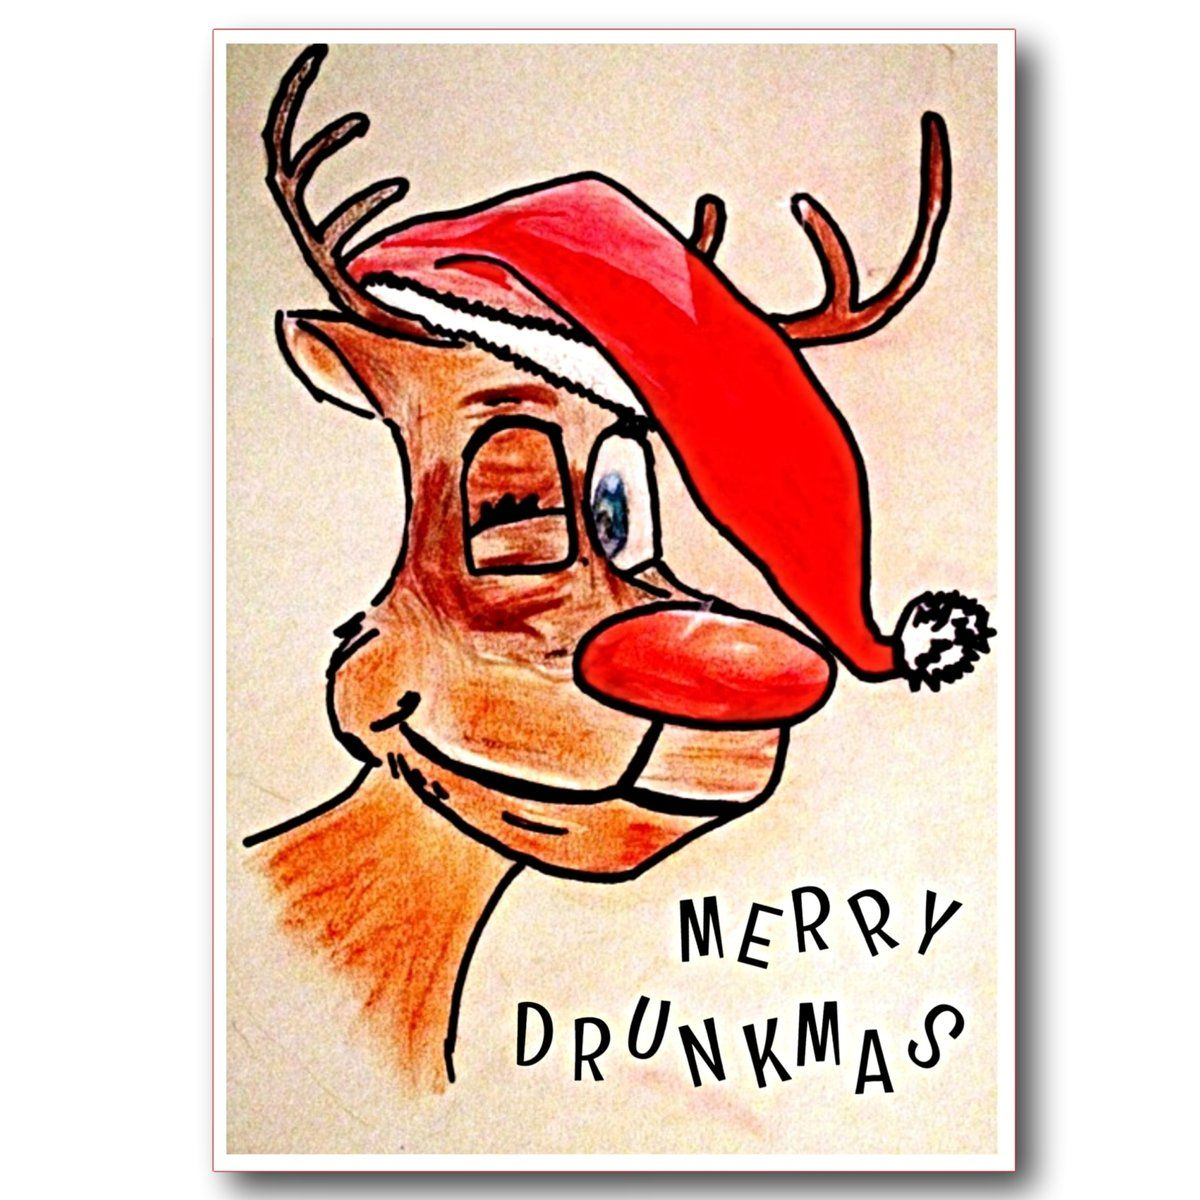 Funny Christmas Card, Merry Drunkmas. in 2020 Funny